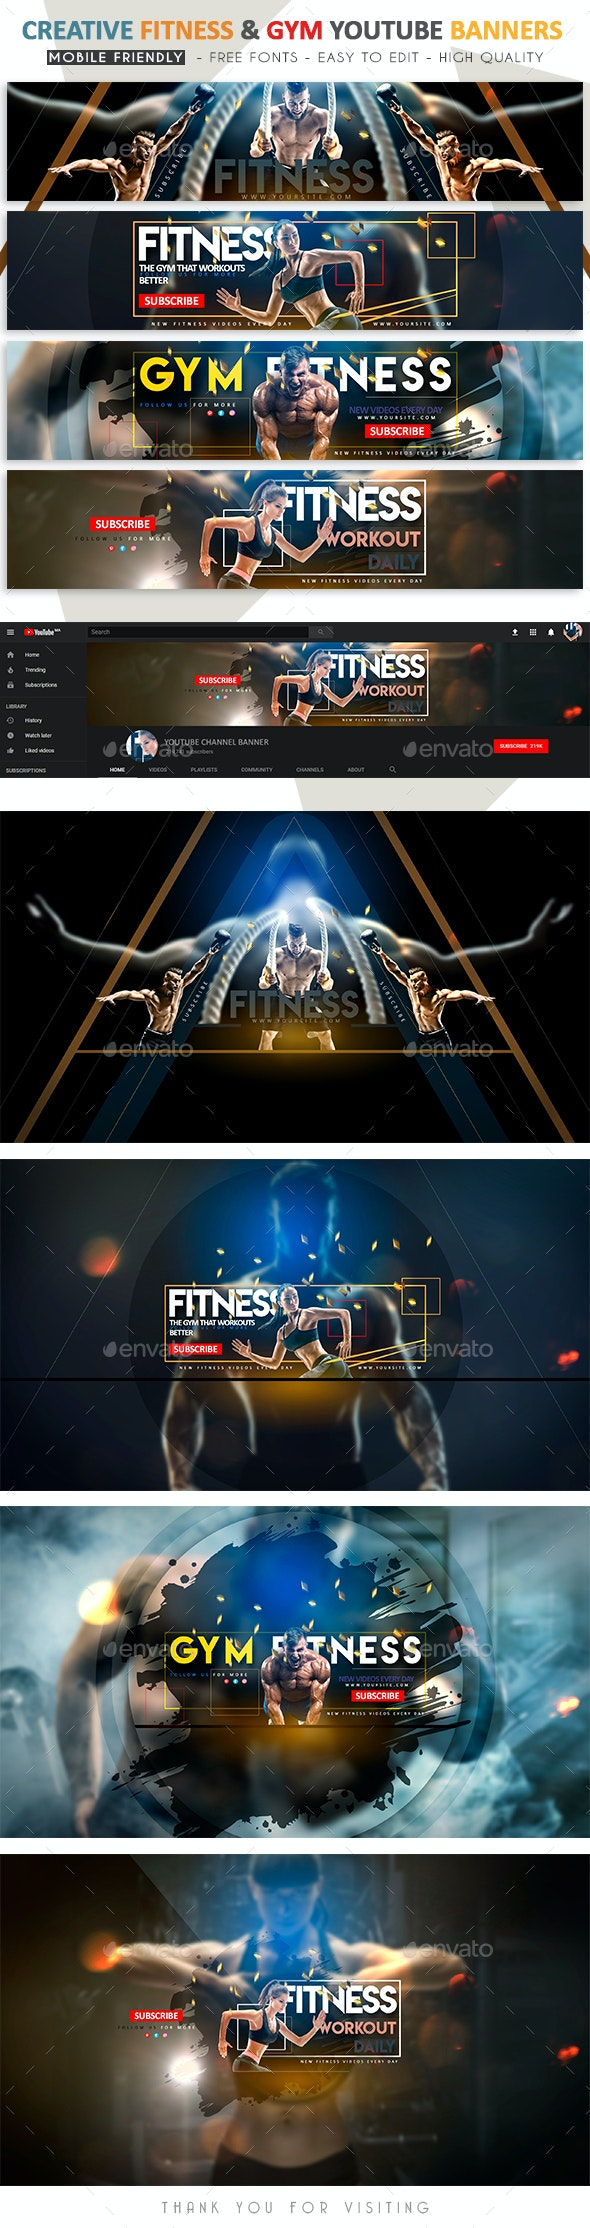 Creative Fitness & Gym YouTube Banner - YouTube Social Media